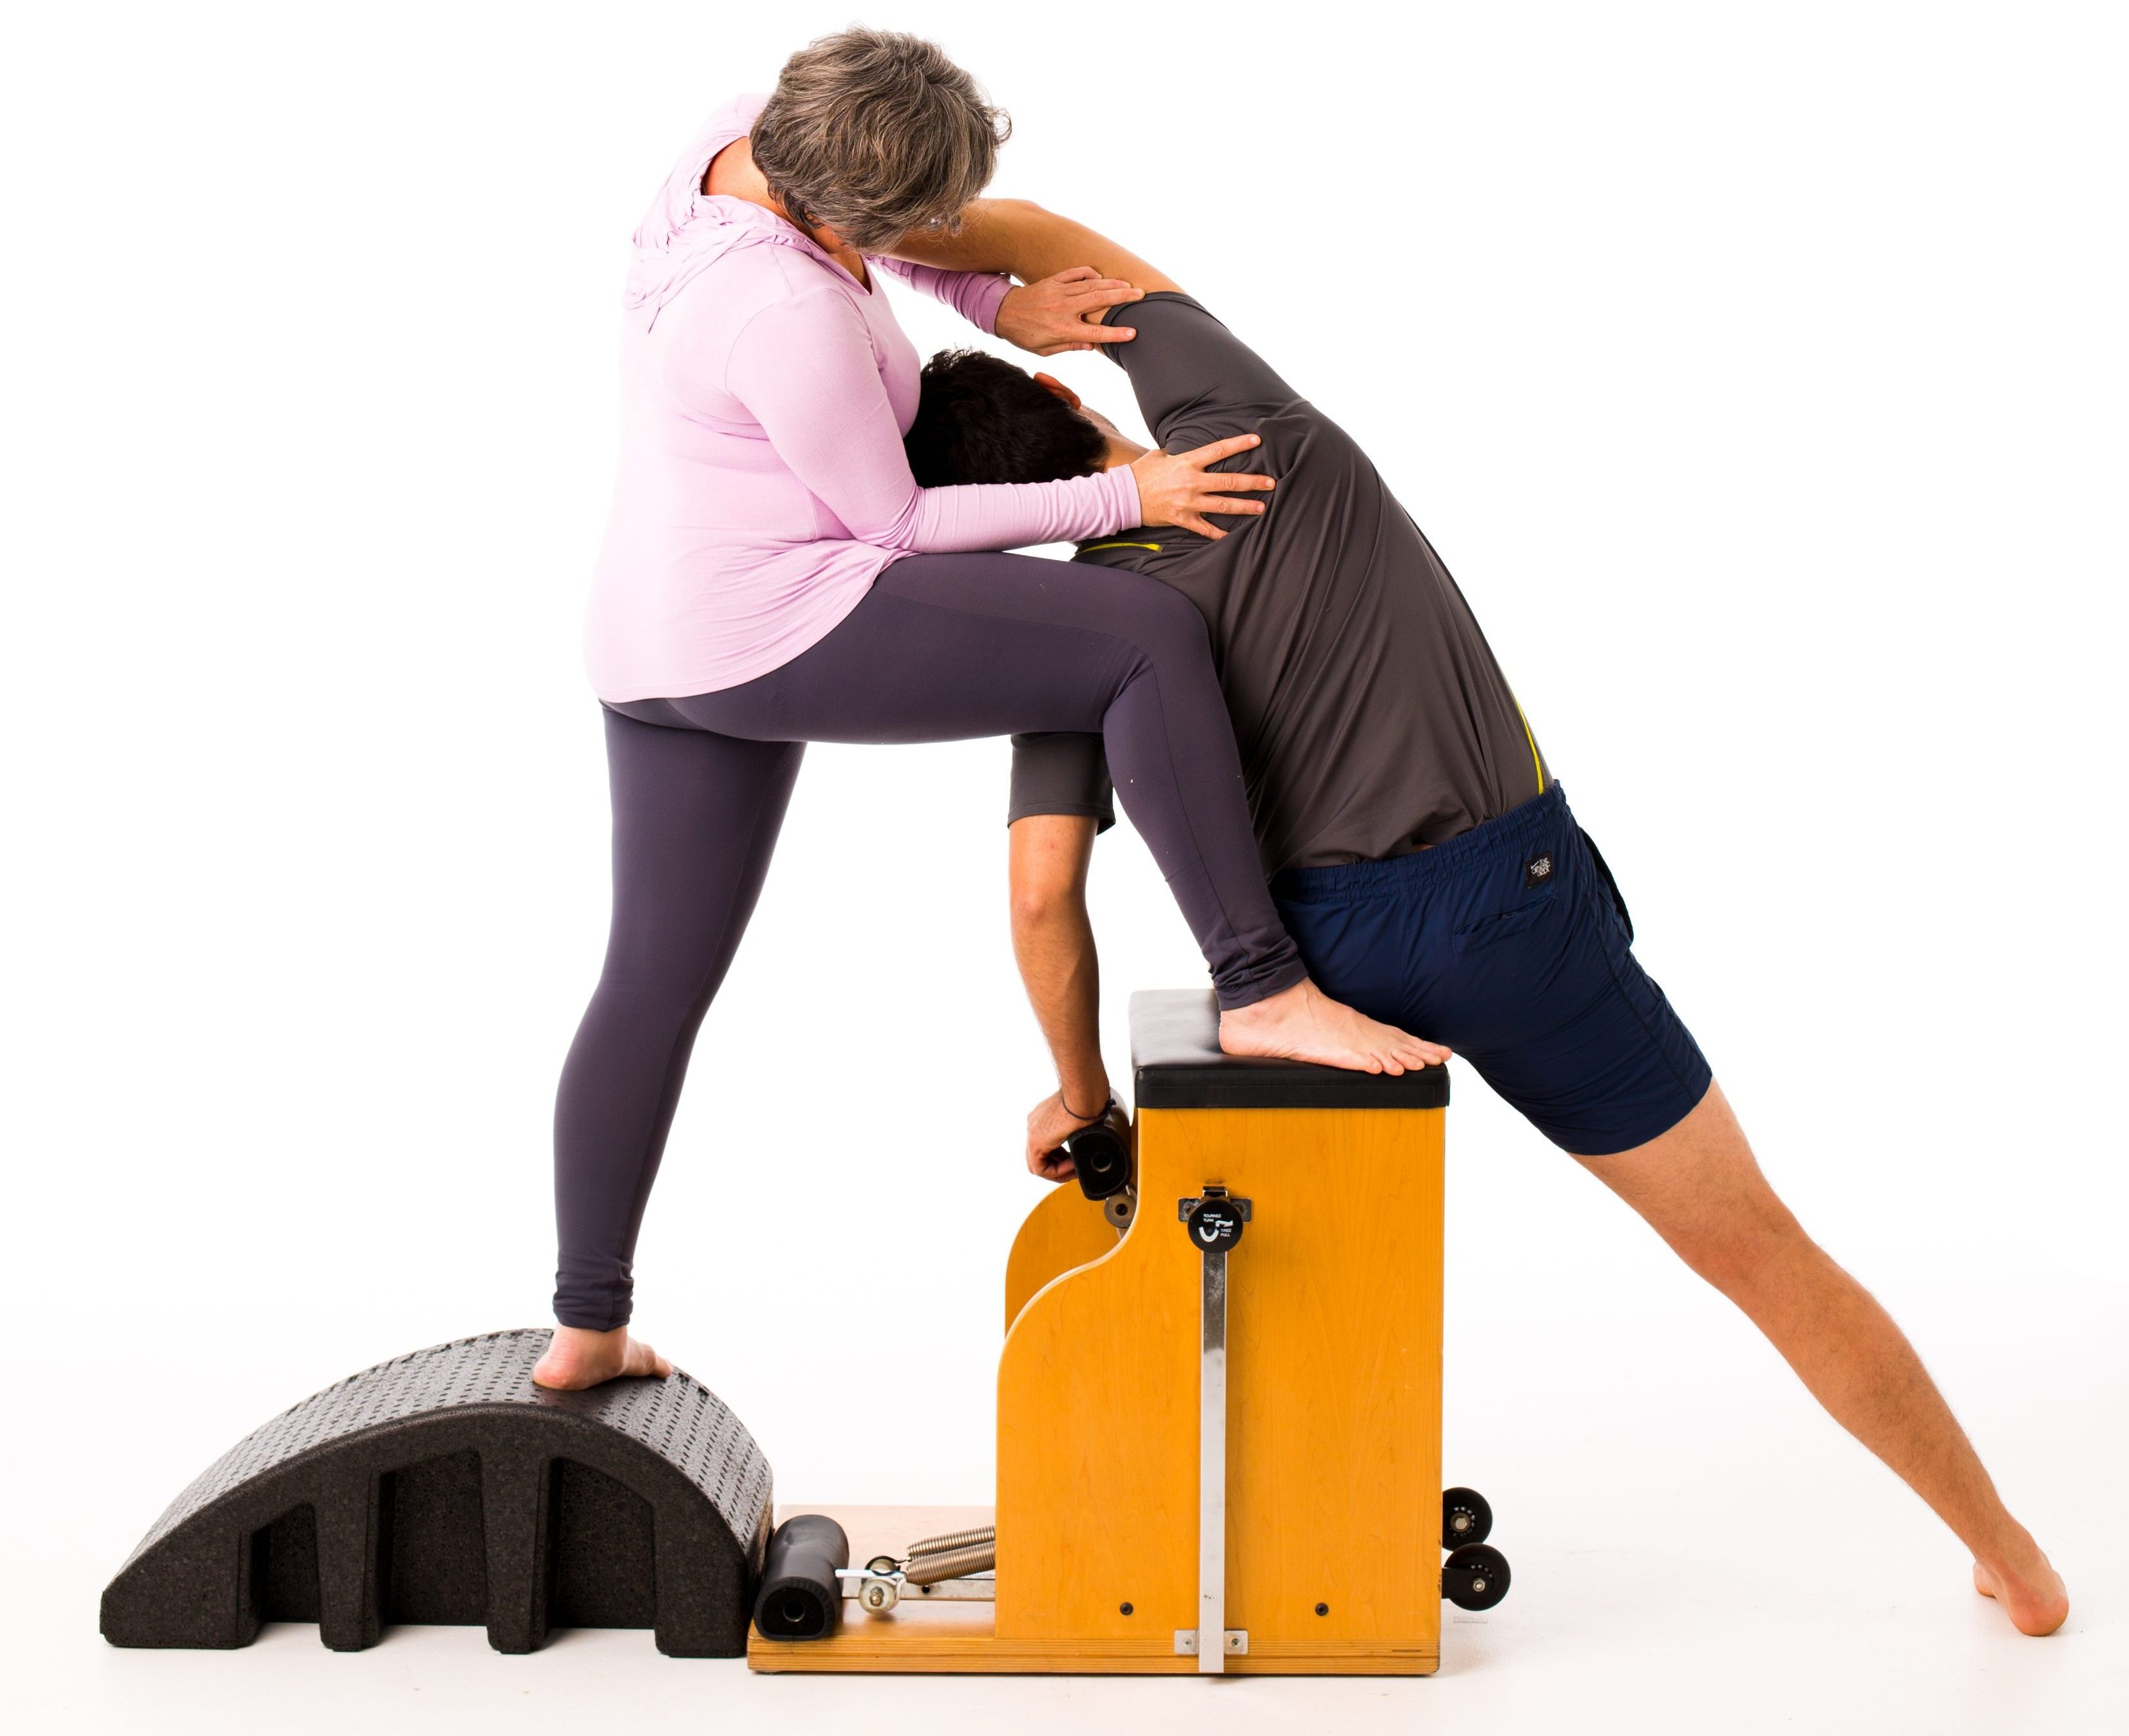 pilates is great for low back pain